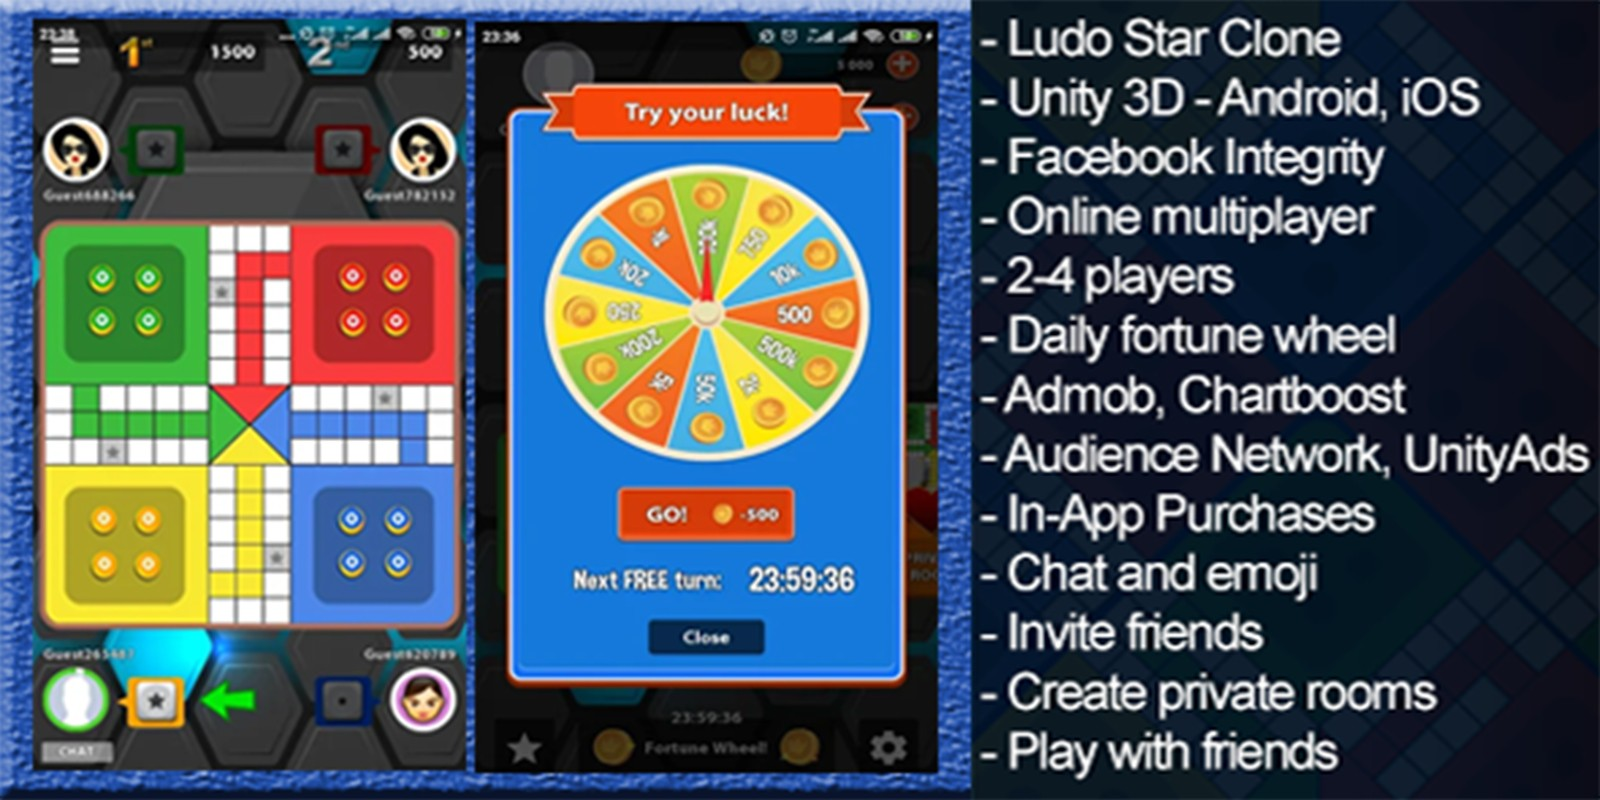 Ludo Multiplayer - Complete Unity Project